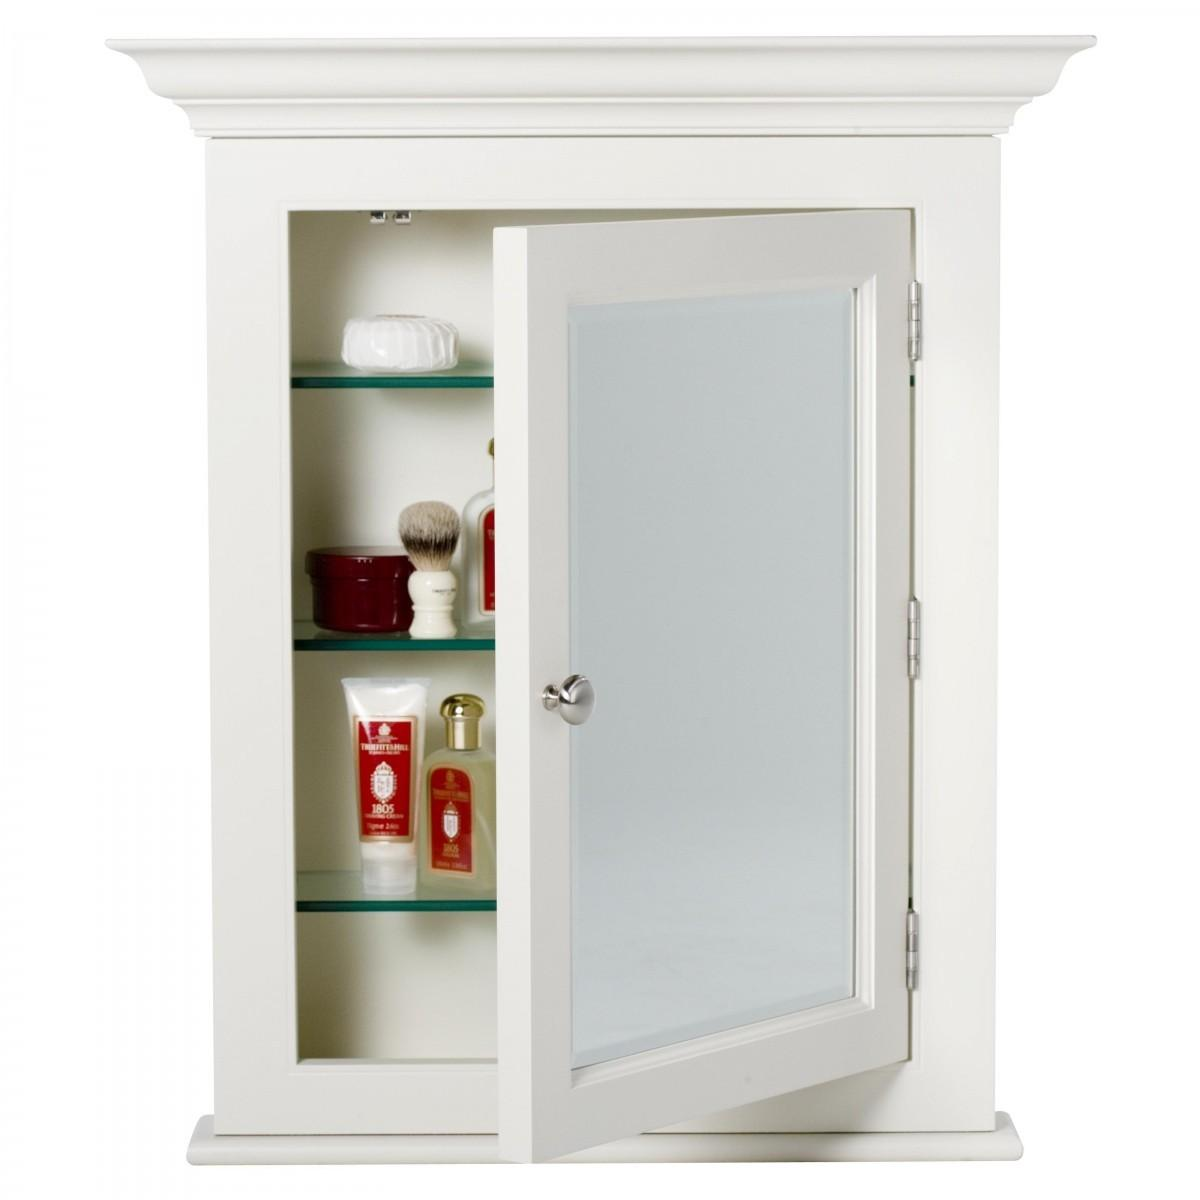 Mirrored Medicine Cabinets Recessed Awesome